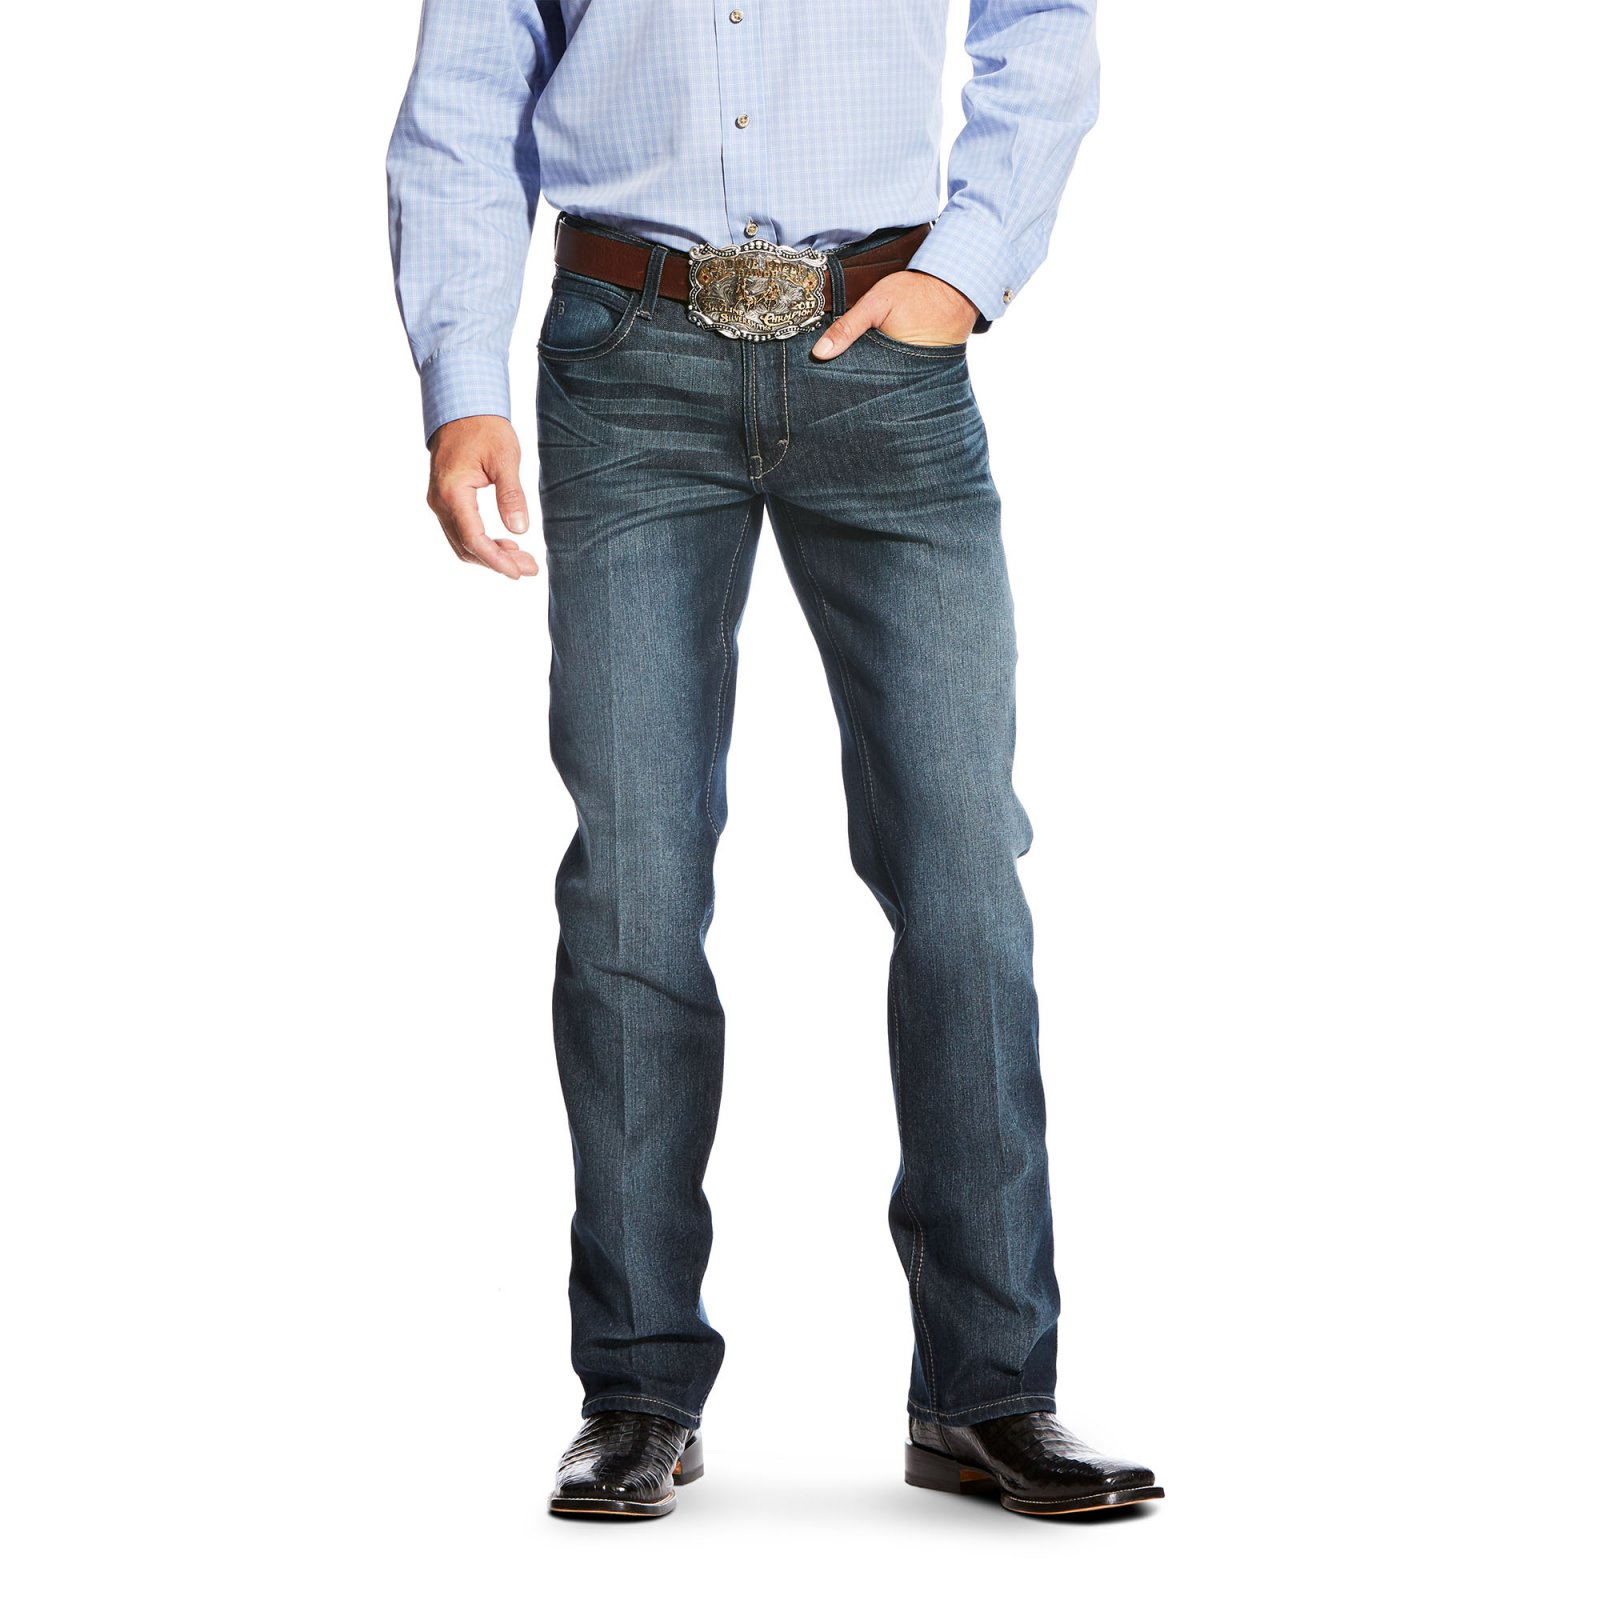 Men's Relentless Jean from Ariat